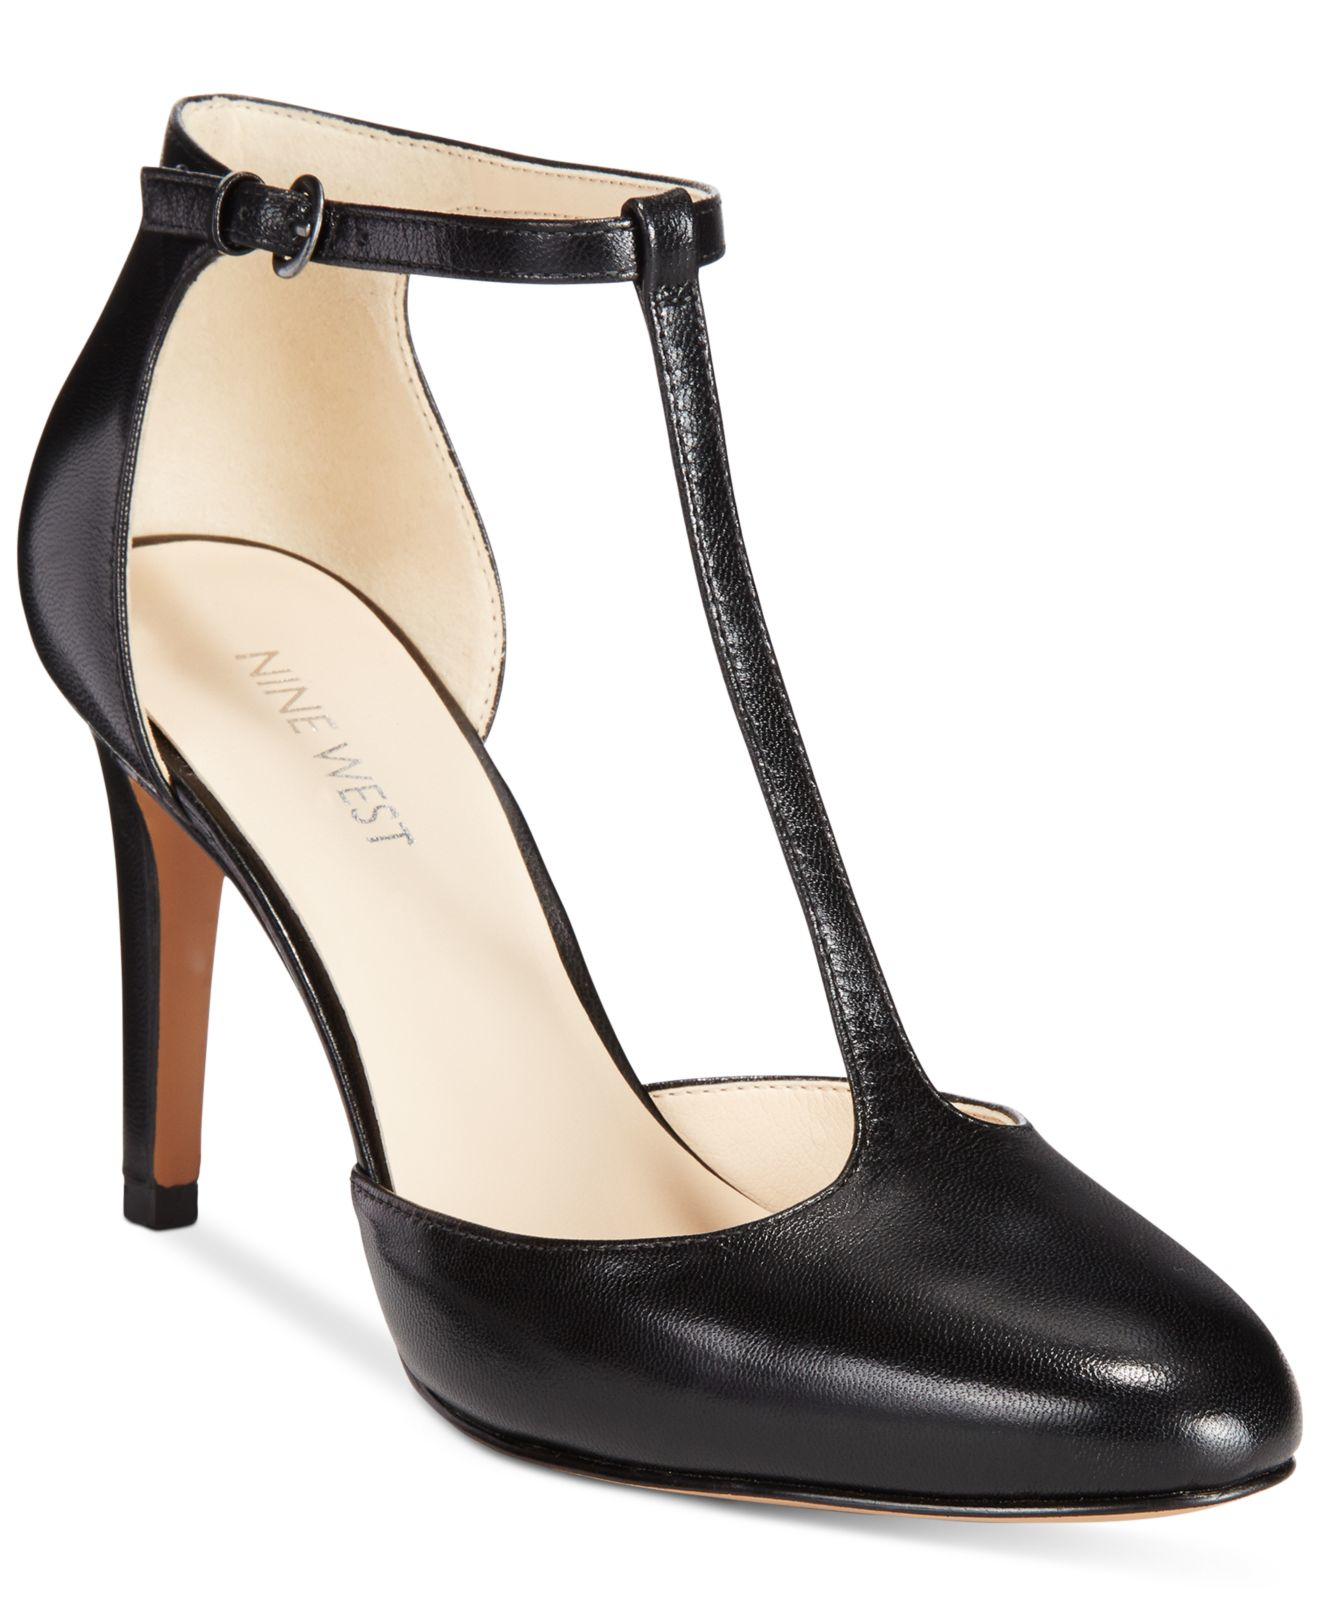 size 40 new arrivals special section Nine West Leather Halinan T-strap Dress Pumps in Black Leather ...